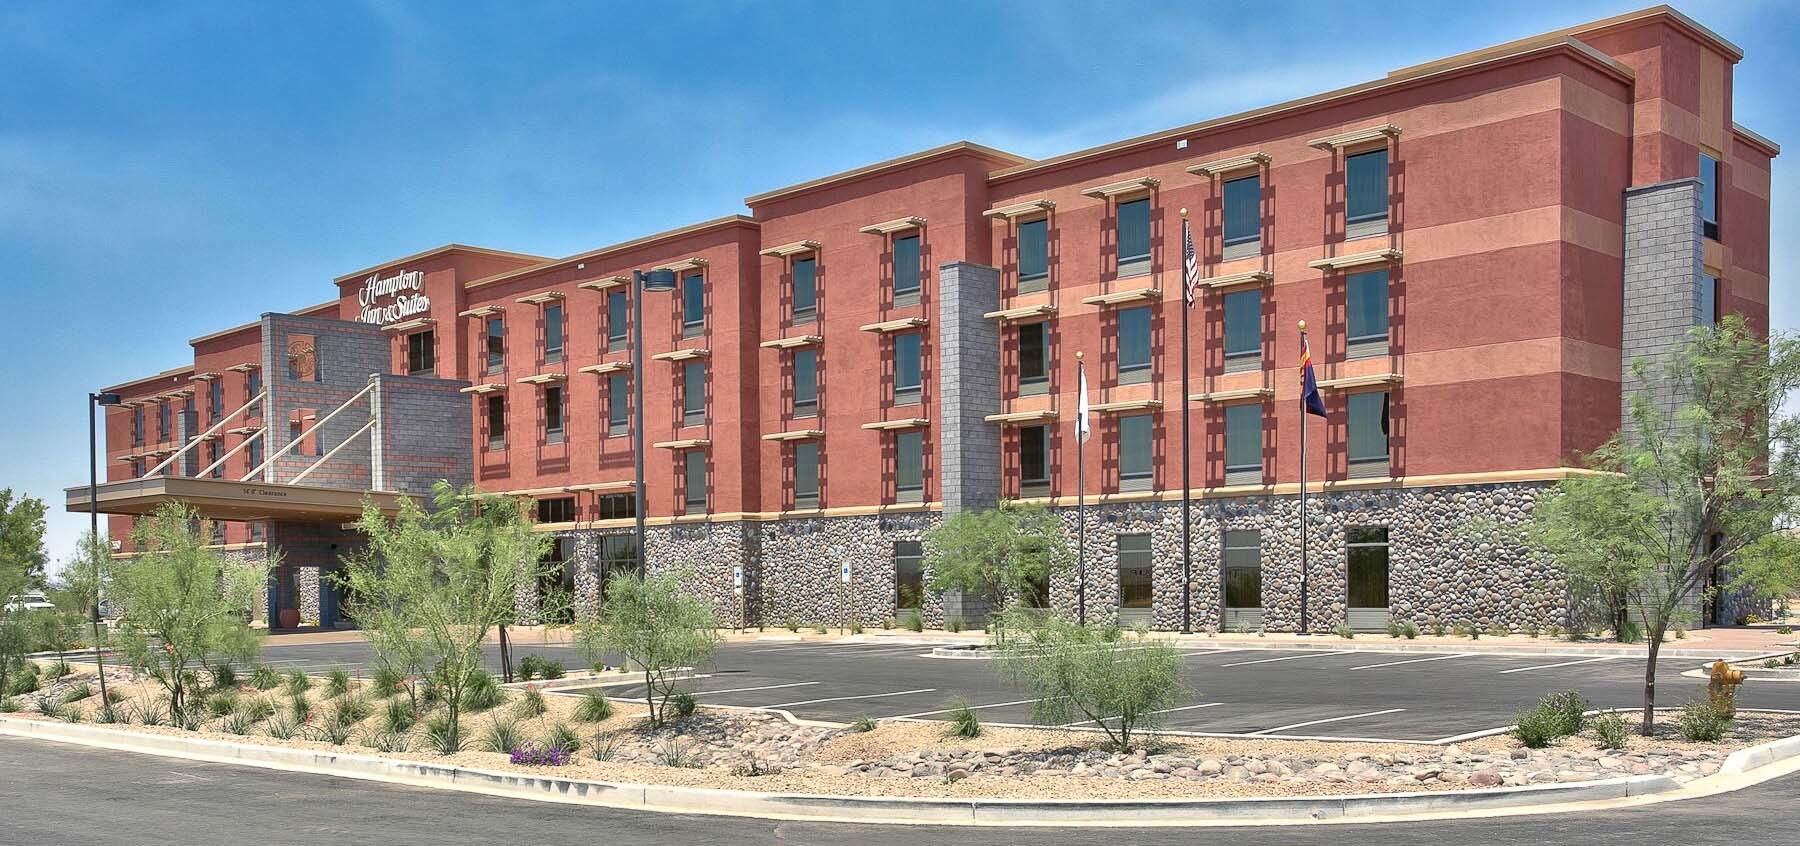 Hampton Inn Suites Scottsdale Riverwalk